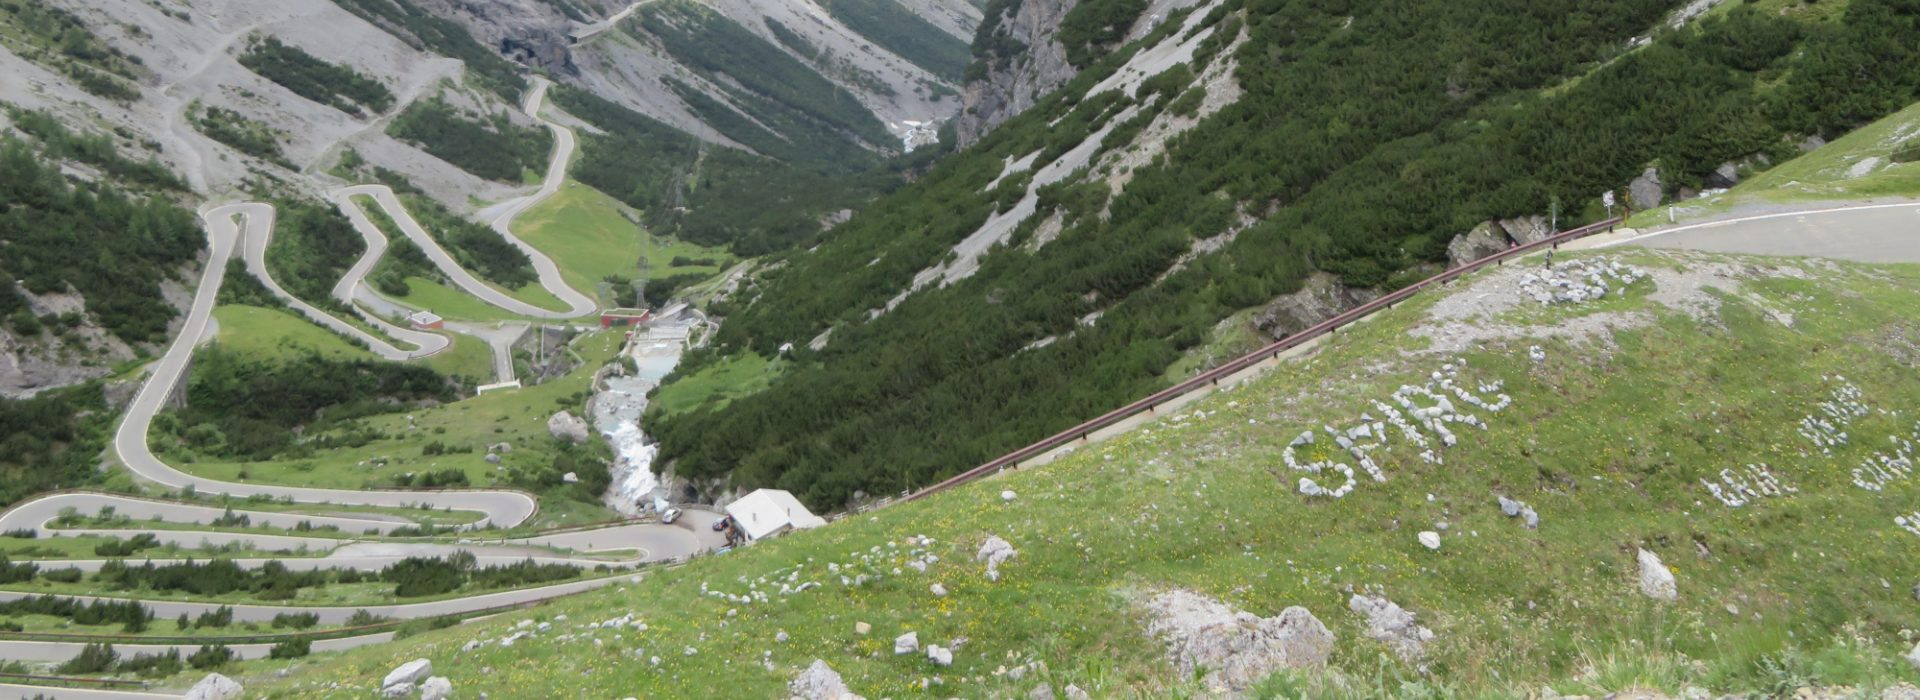 Stelvio Pass Alpine Motorcycle Tour